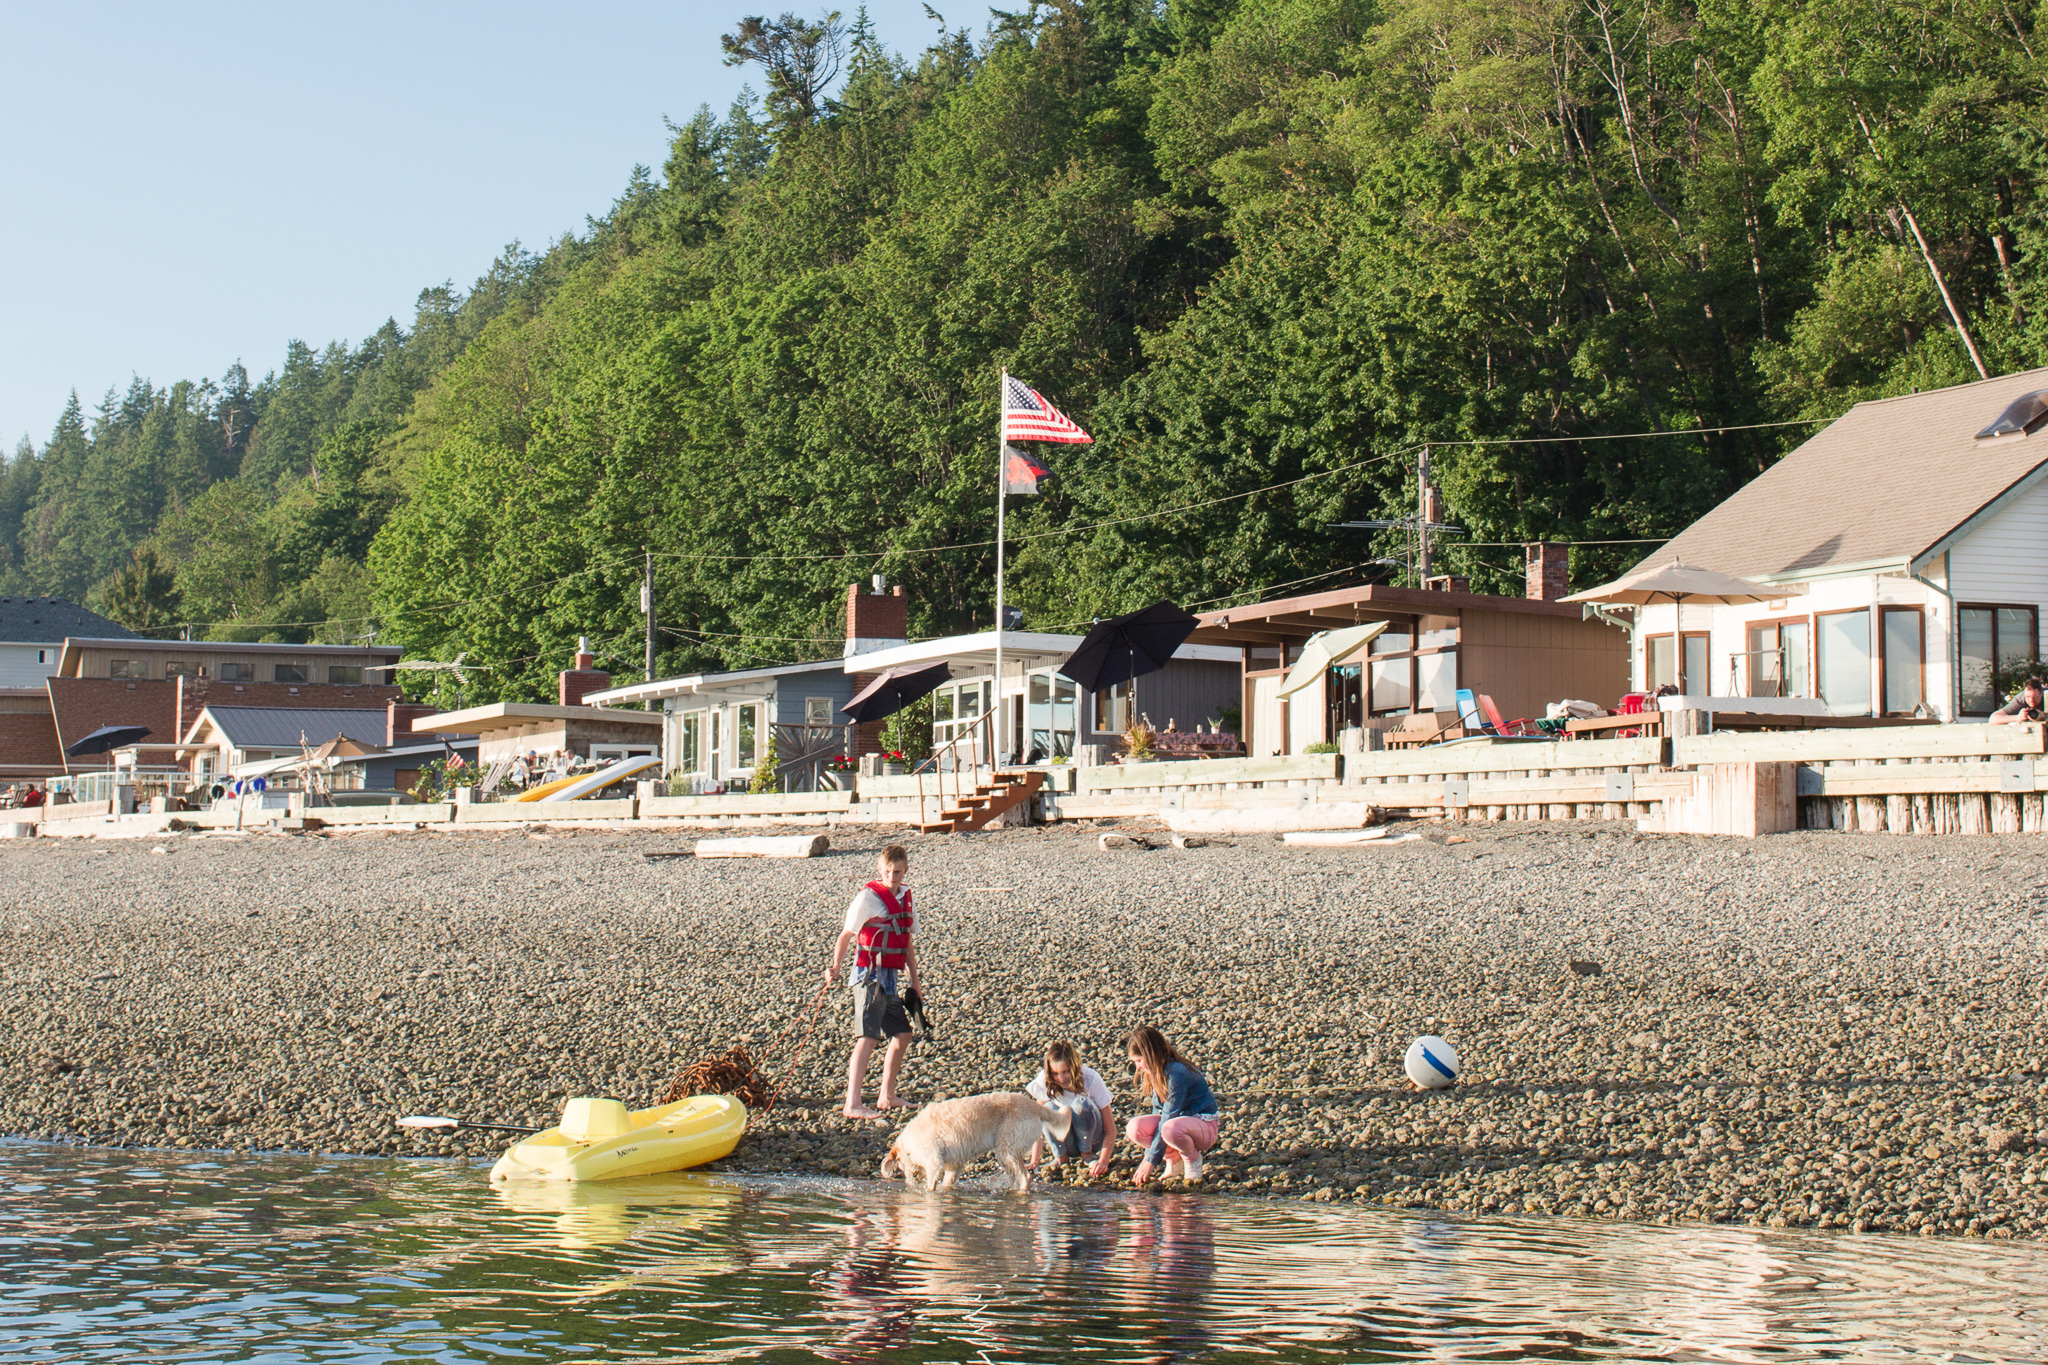 "<a href=""http://stanwood-camano-windermere.withwre.com/mckees-beach""><h4>McKees Beach</h4>Stanwood</a>"